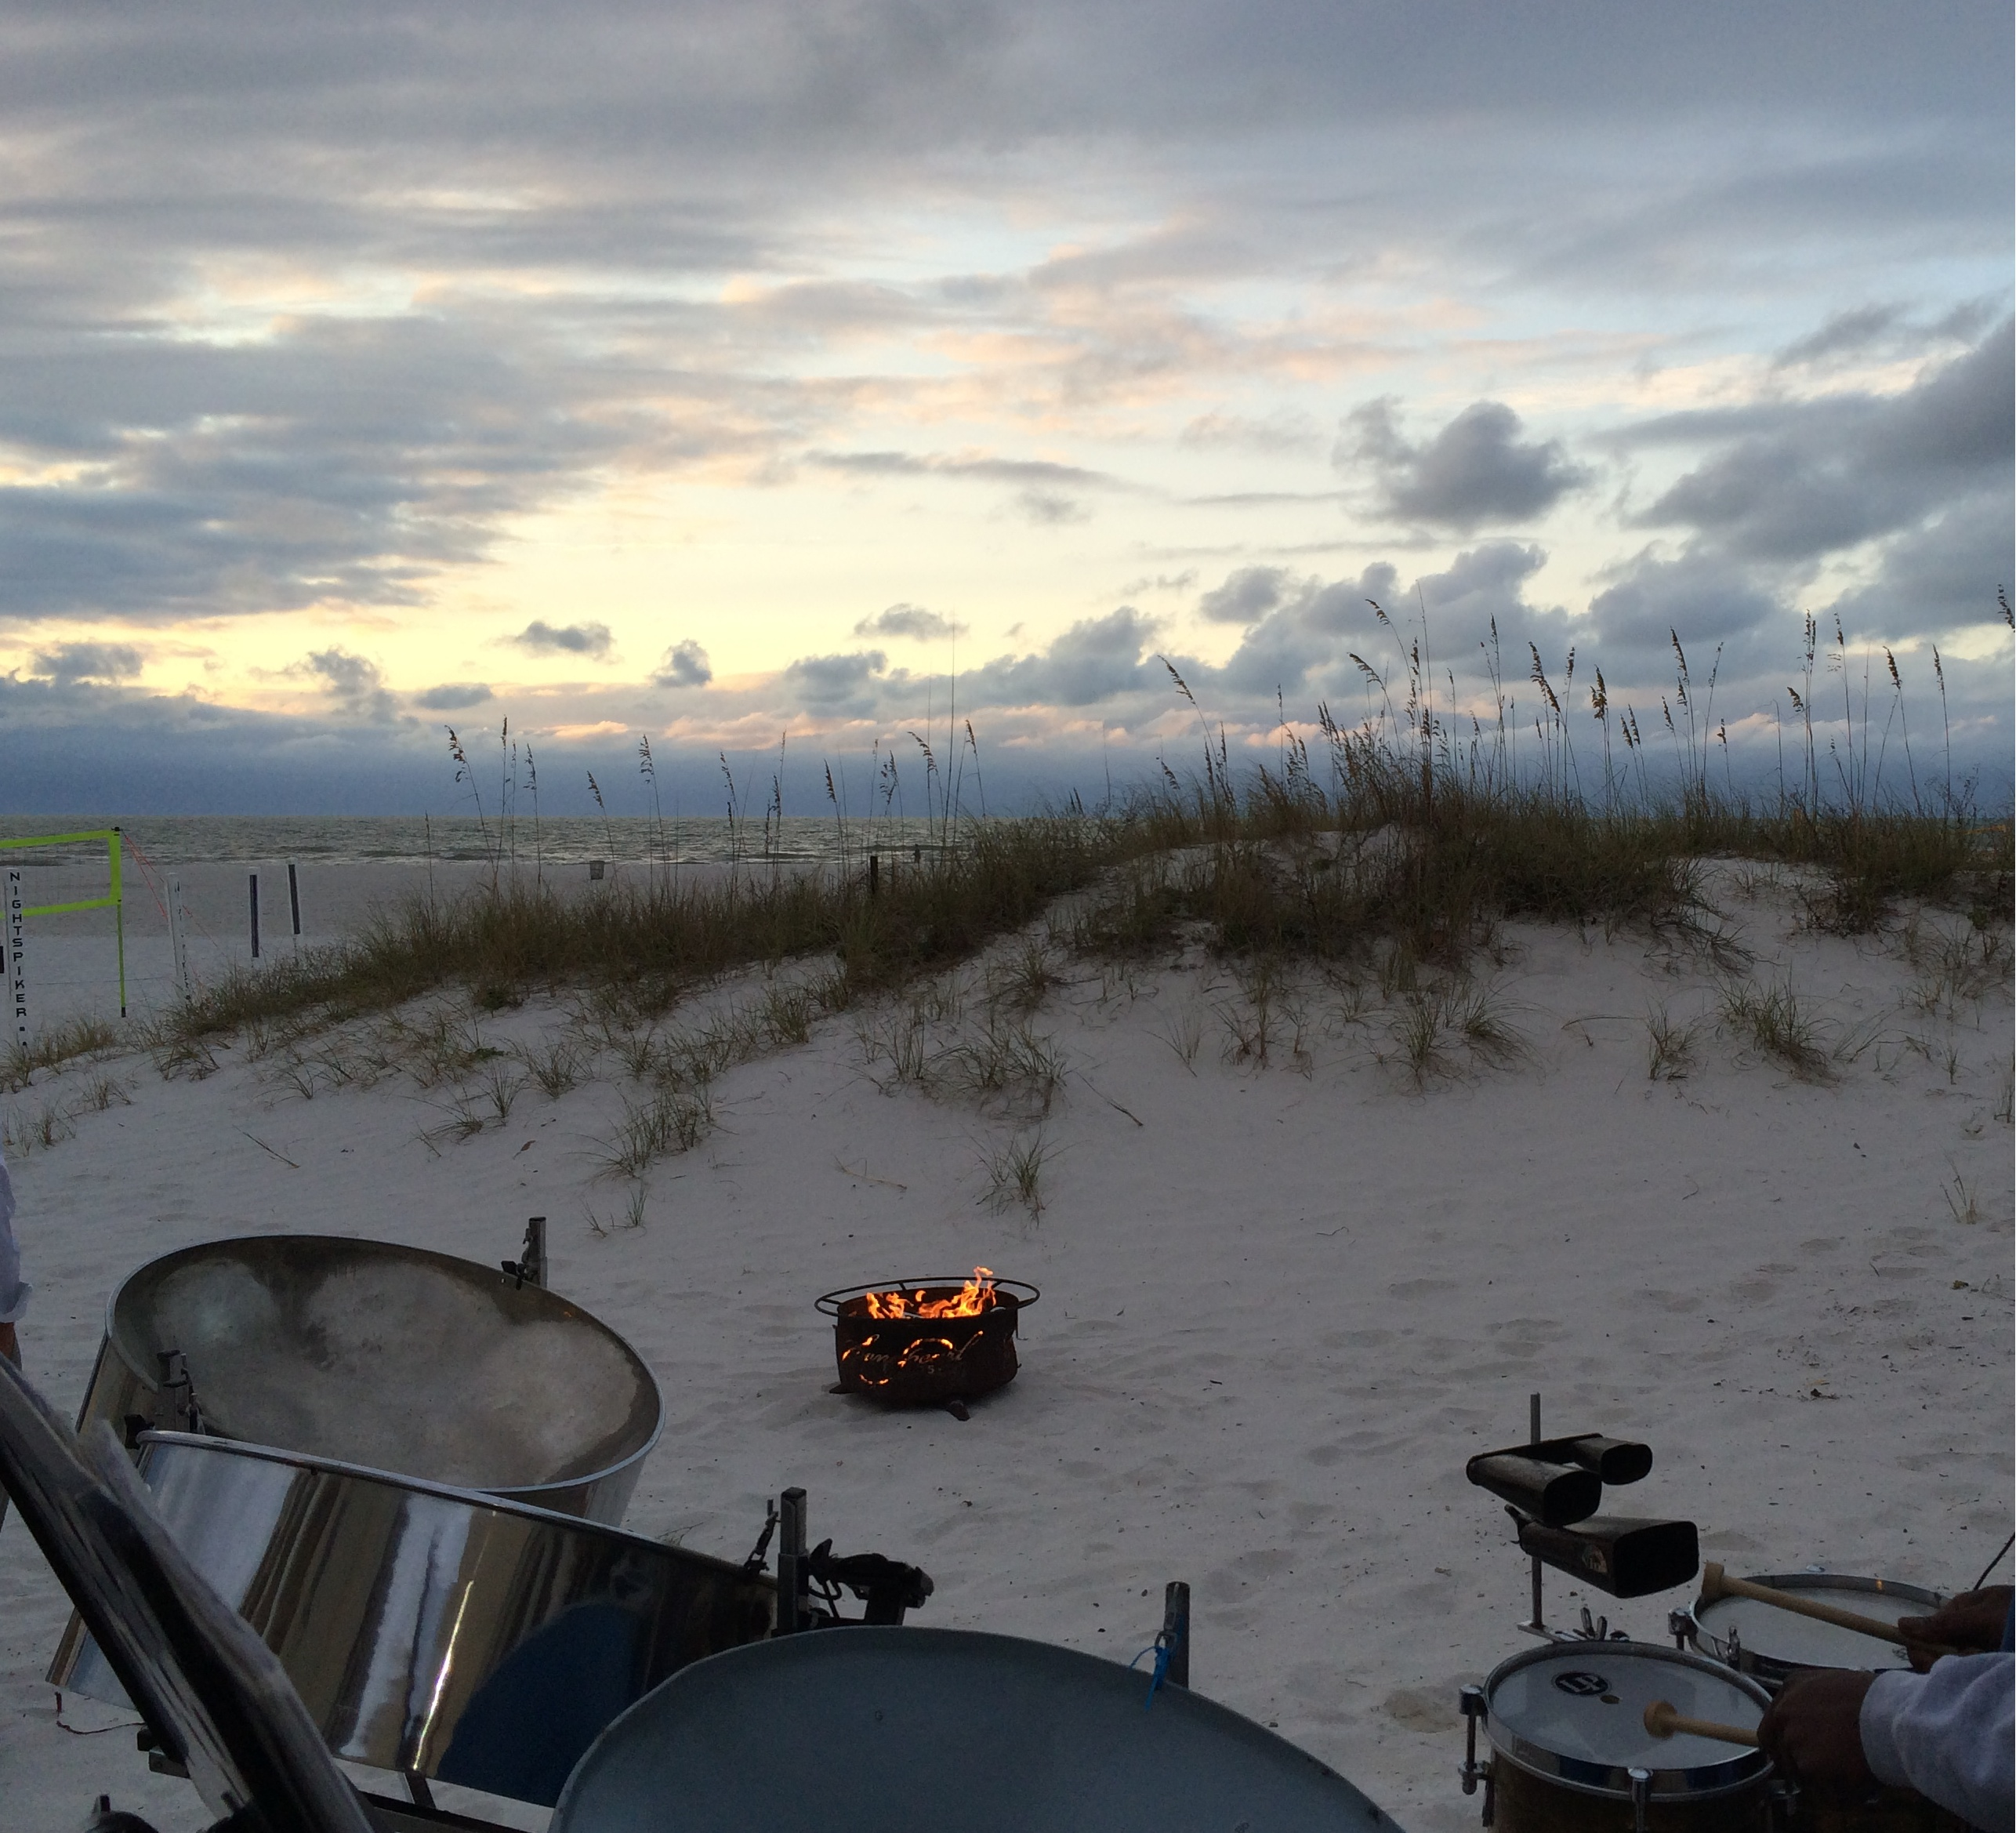 Steel Pan Sunset at the Sandpearl on Clearwater Beach